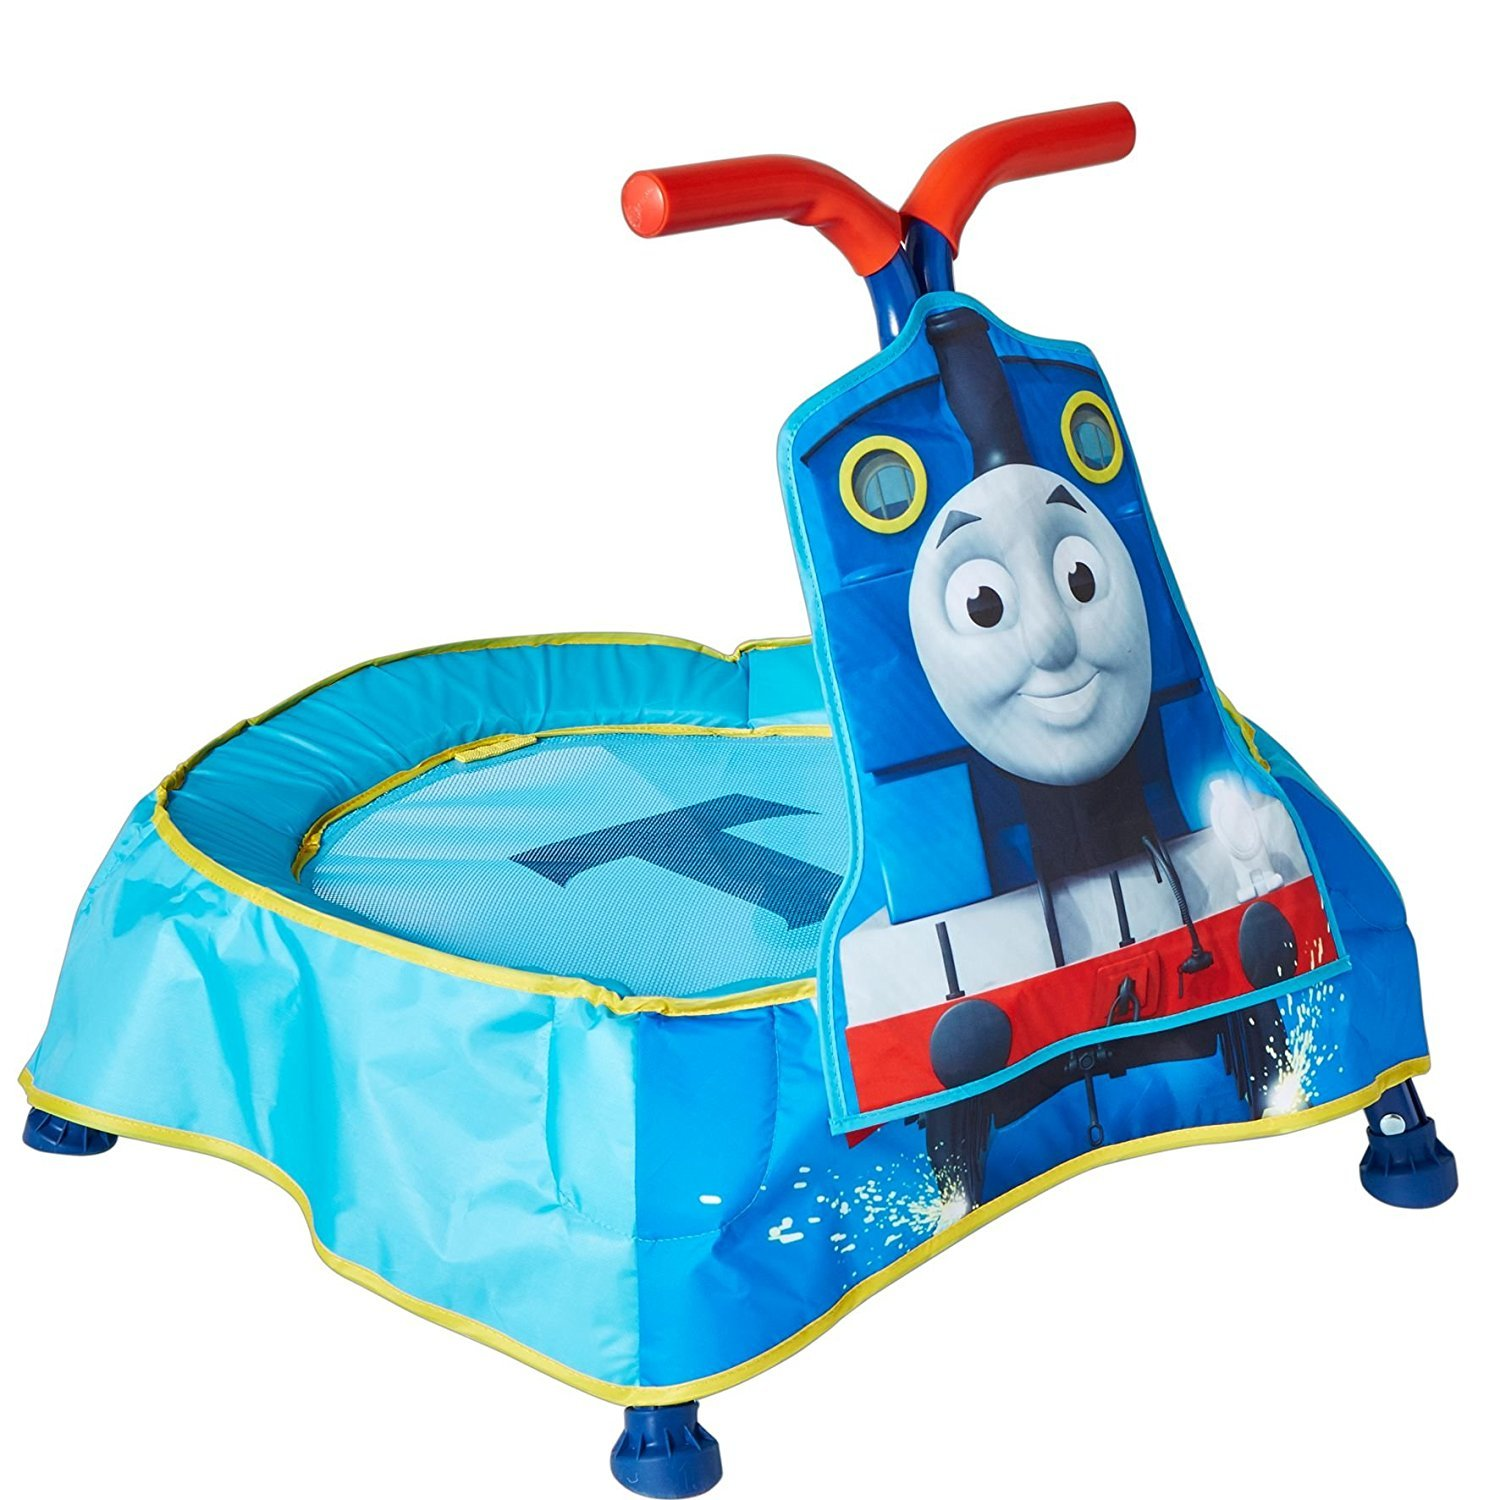 Thomas the Train and Friends Trampoline with Sound Ages 1 - 3 Years